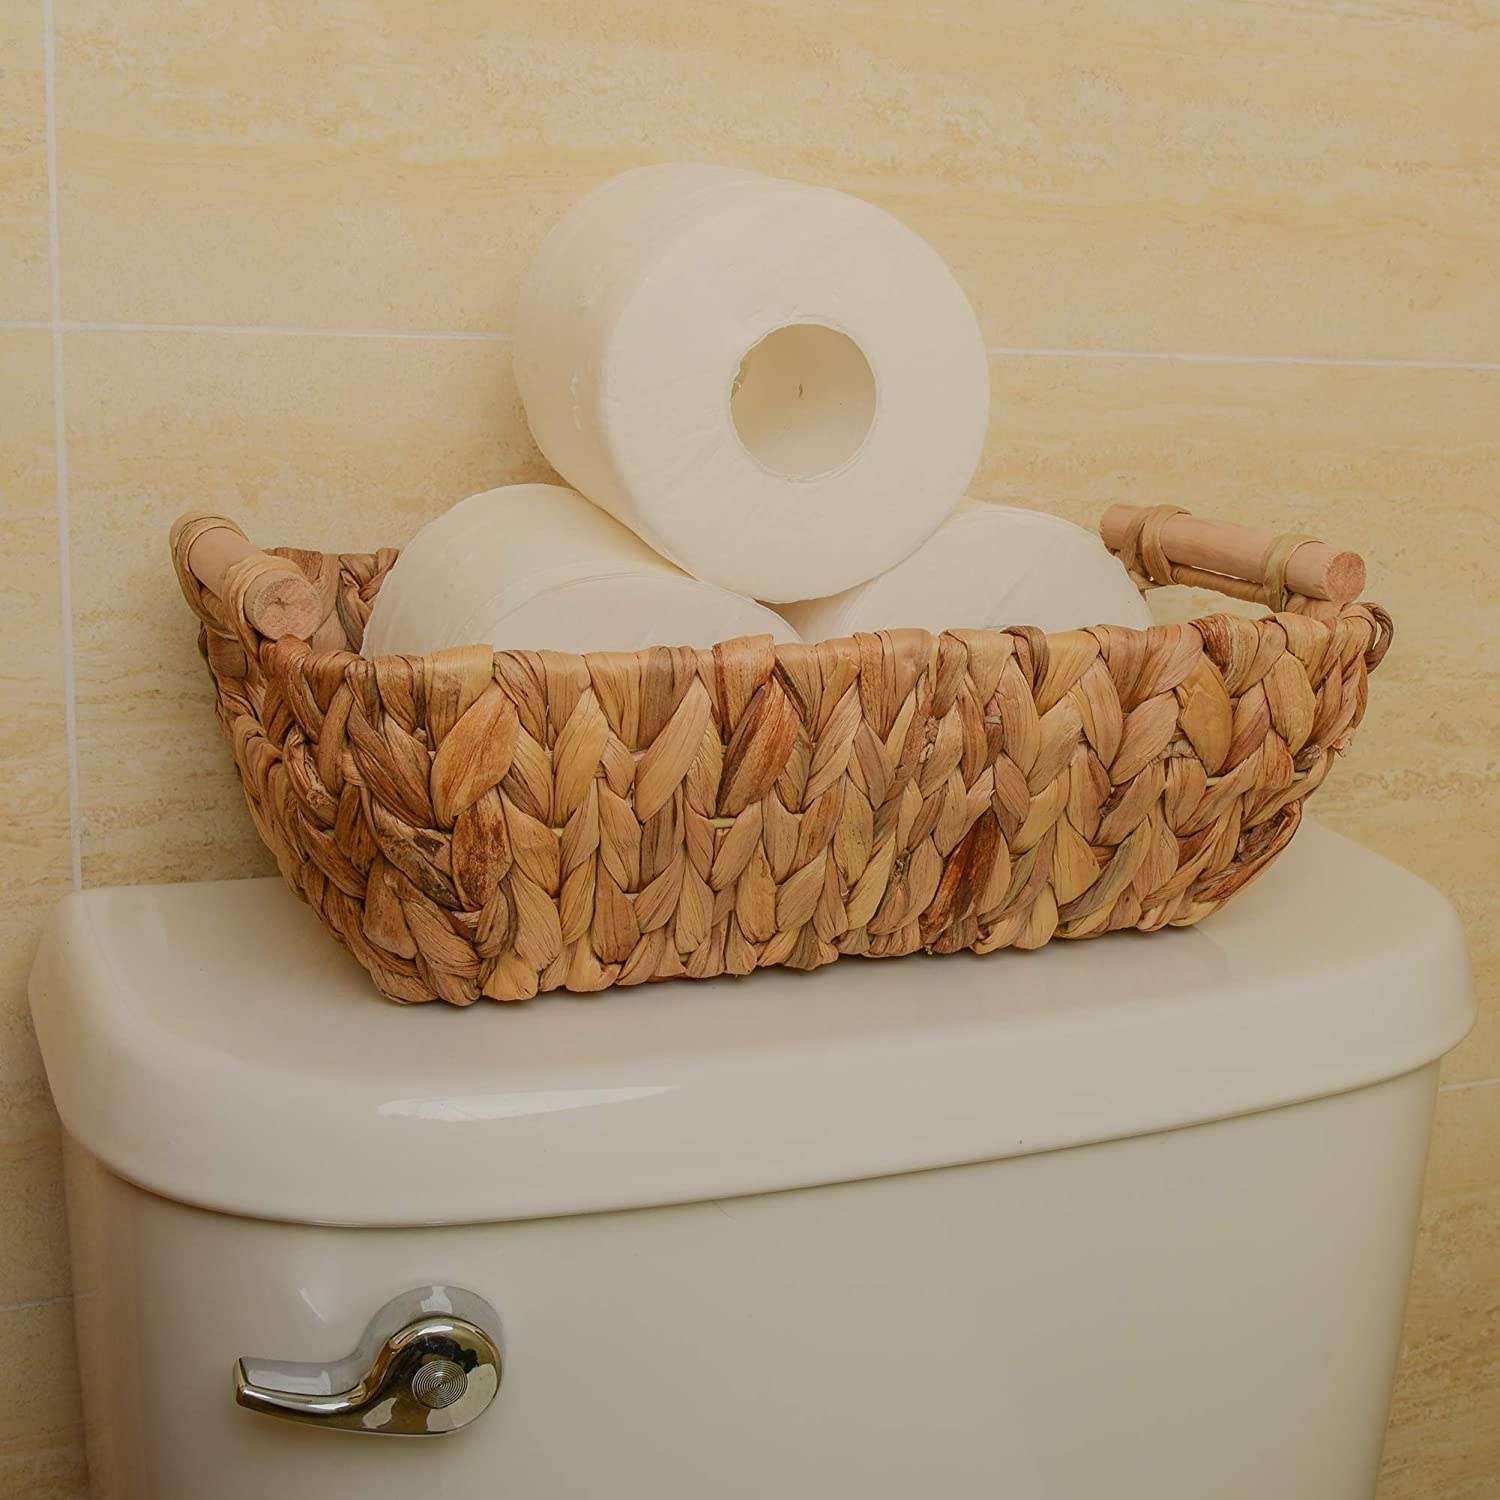 a woven hyacinth basket with toilet paper rolls inside of it sitting atop a toilet